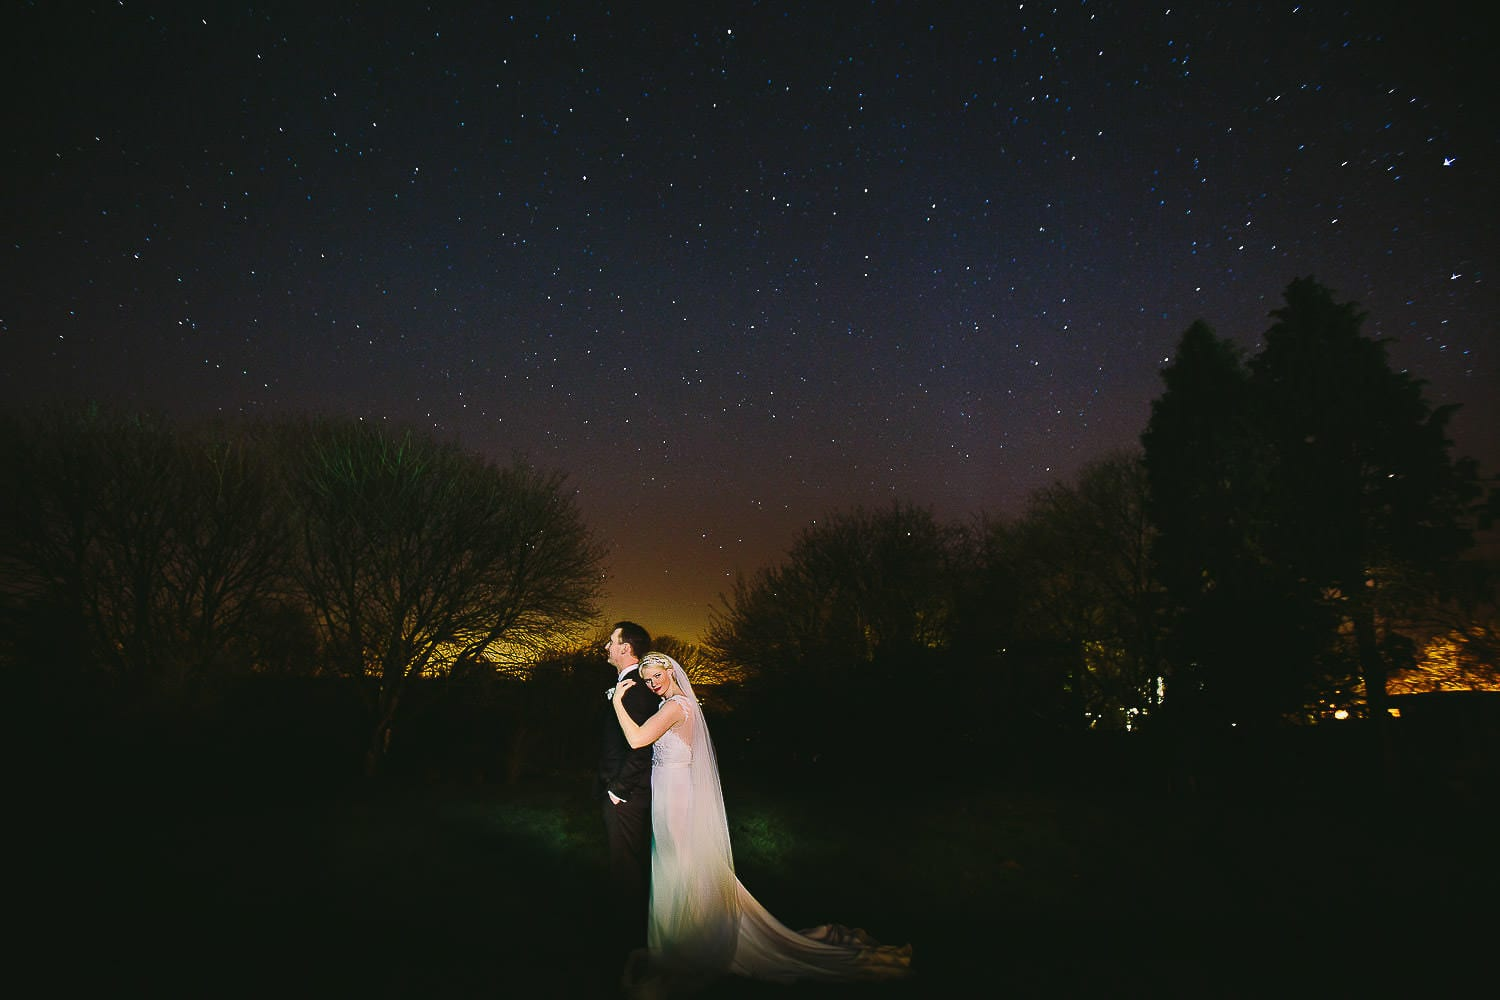 The bride and groom under the stars